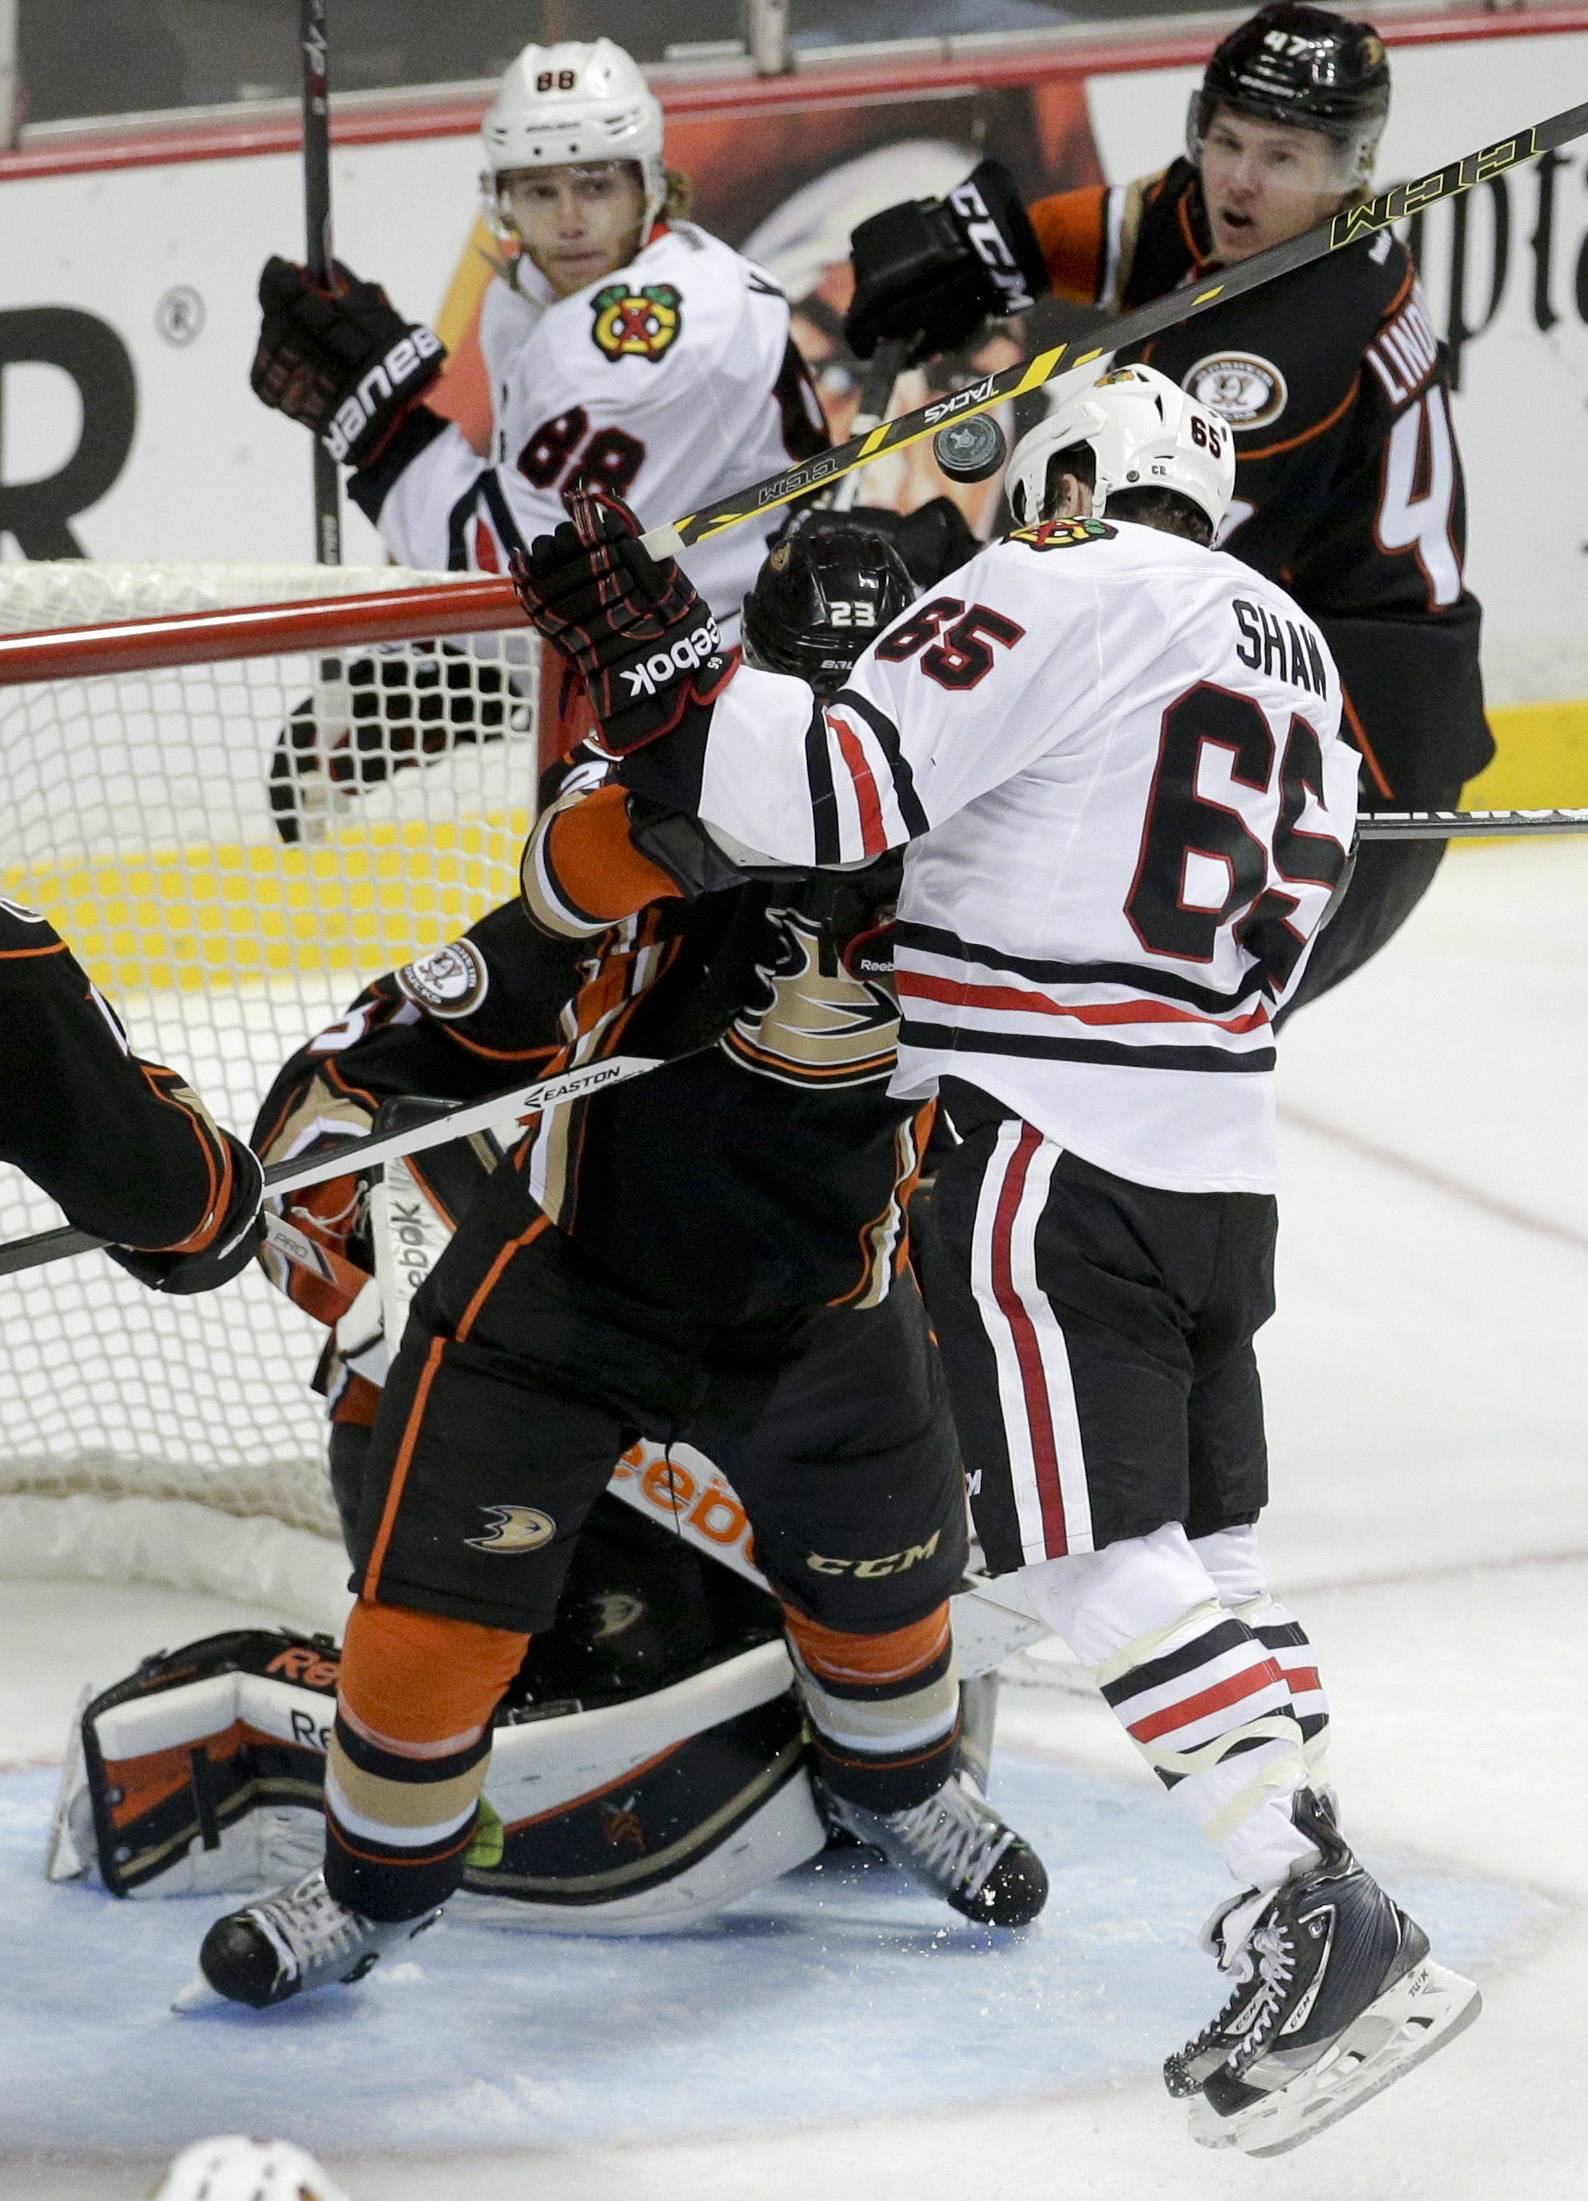 Chicago Blackhawks center Andrew Shaw head-butts the puck into the goal during overtime in Game 2 of the Western Conference final during the NHL hockey Stanley Cup playoffs against the Anaheim Ducks in Anaheim, Calif., on Tuesday, May 19, 2015. The apparent goal was disallowed.